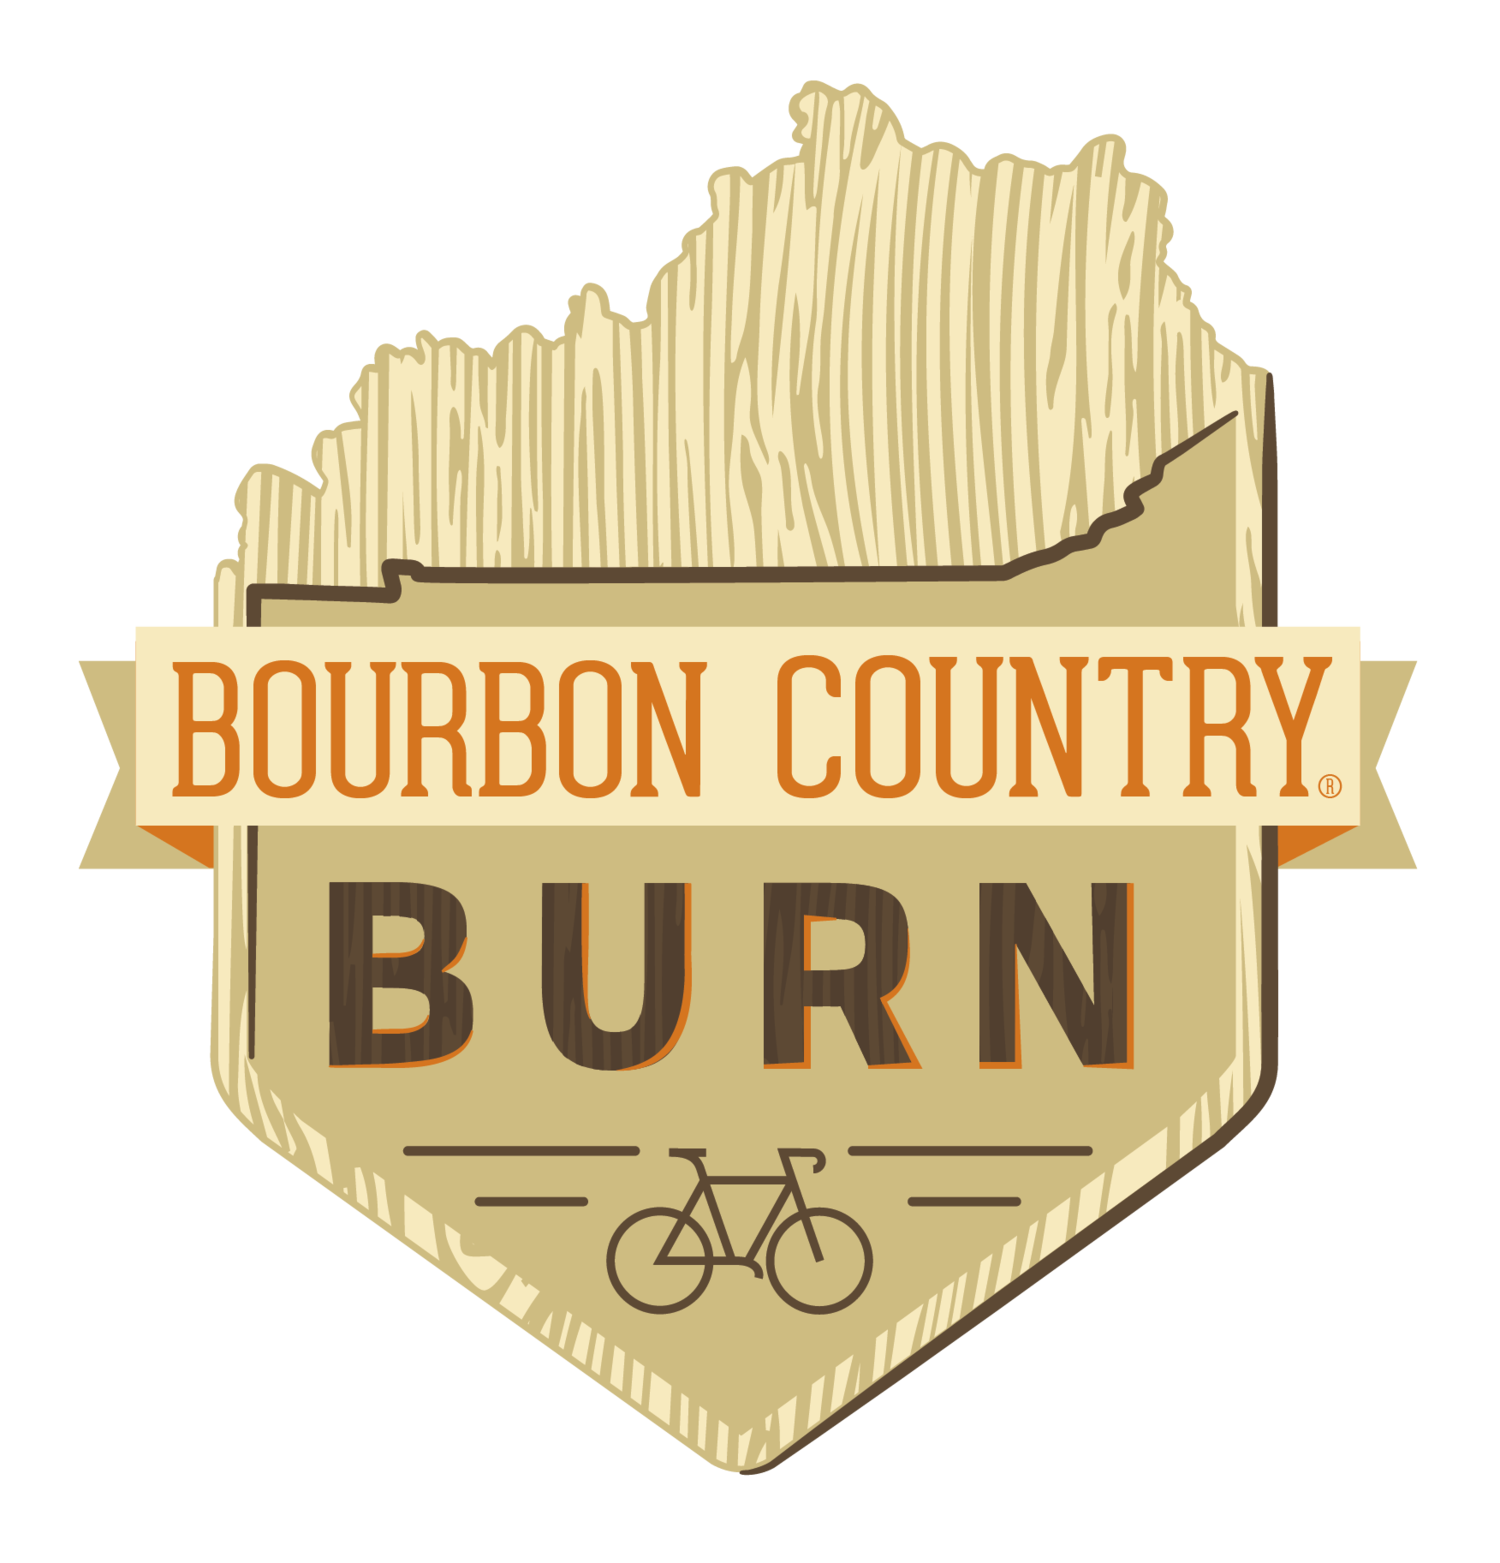 Bourbon Country Burn